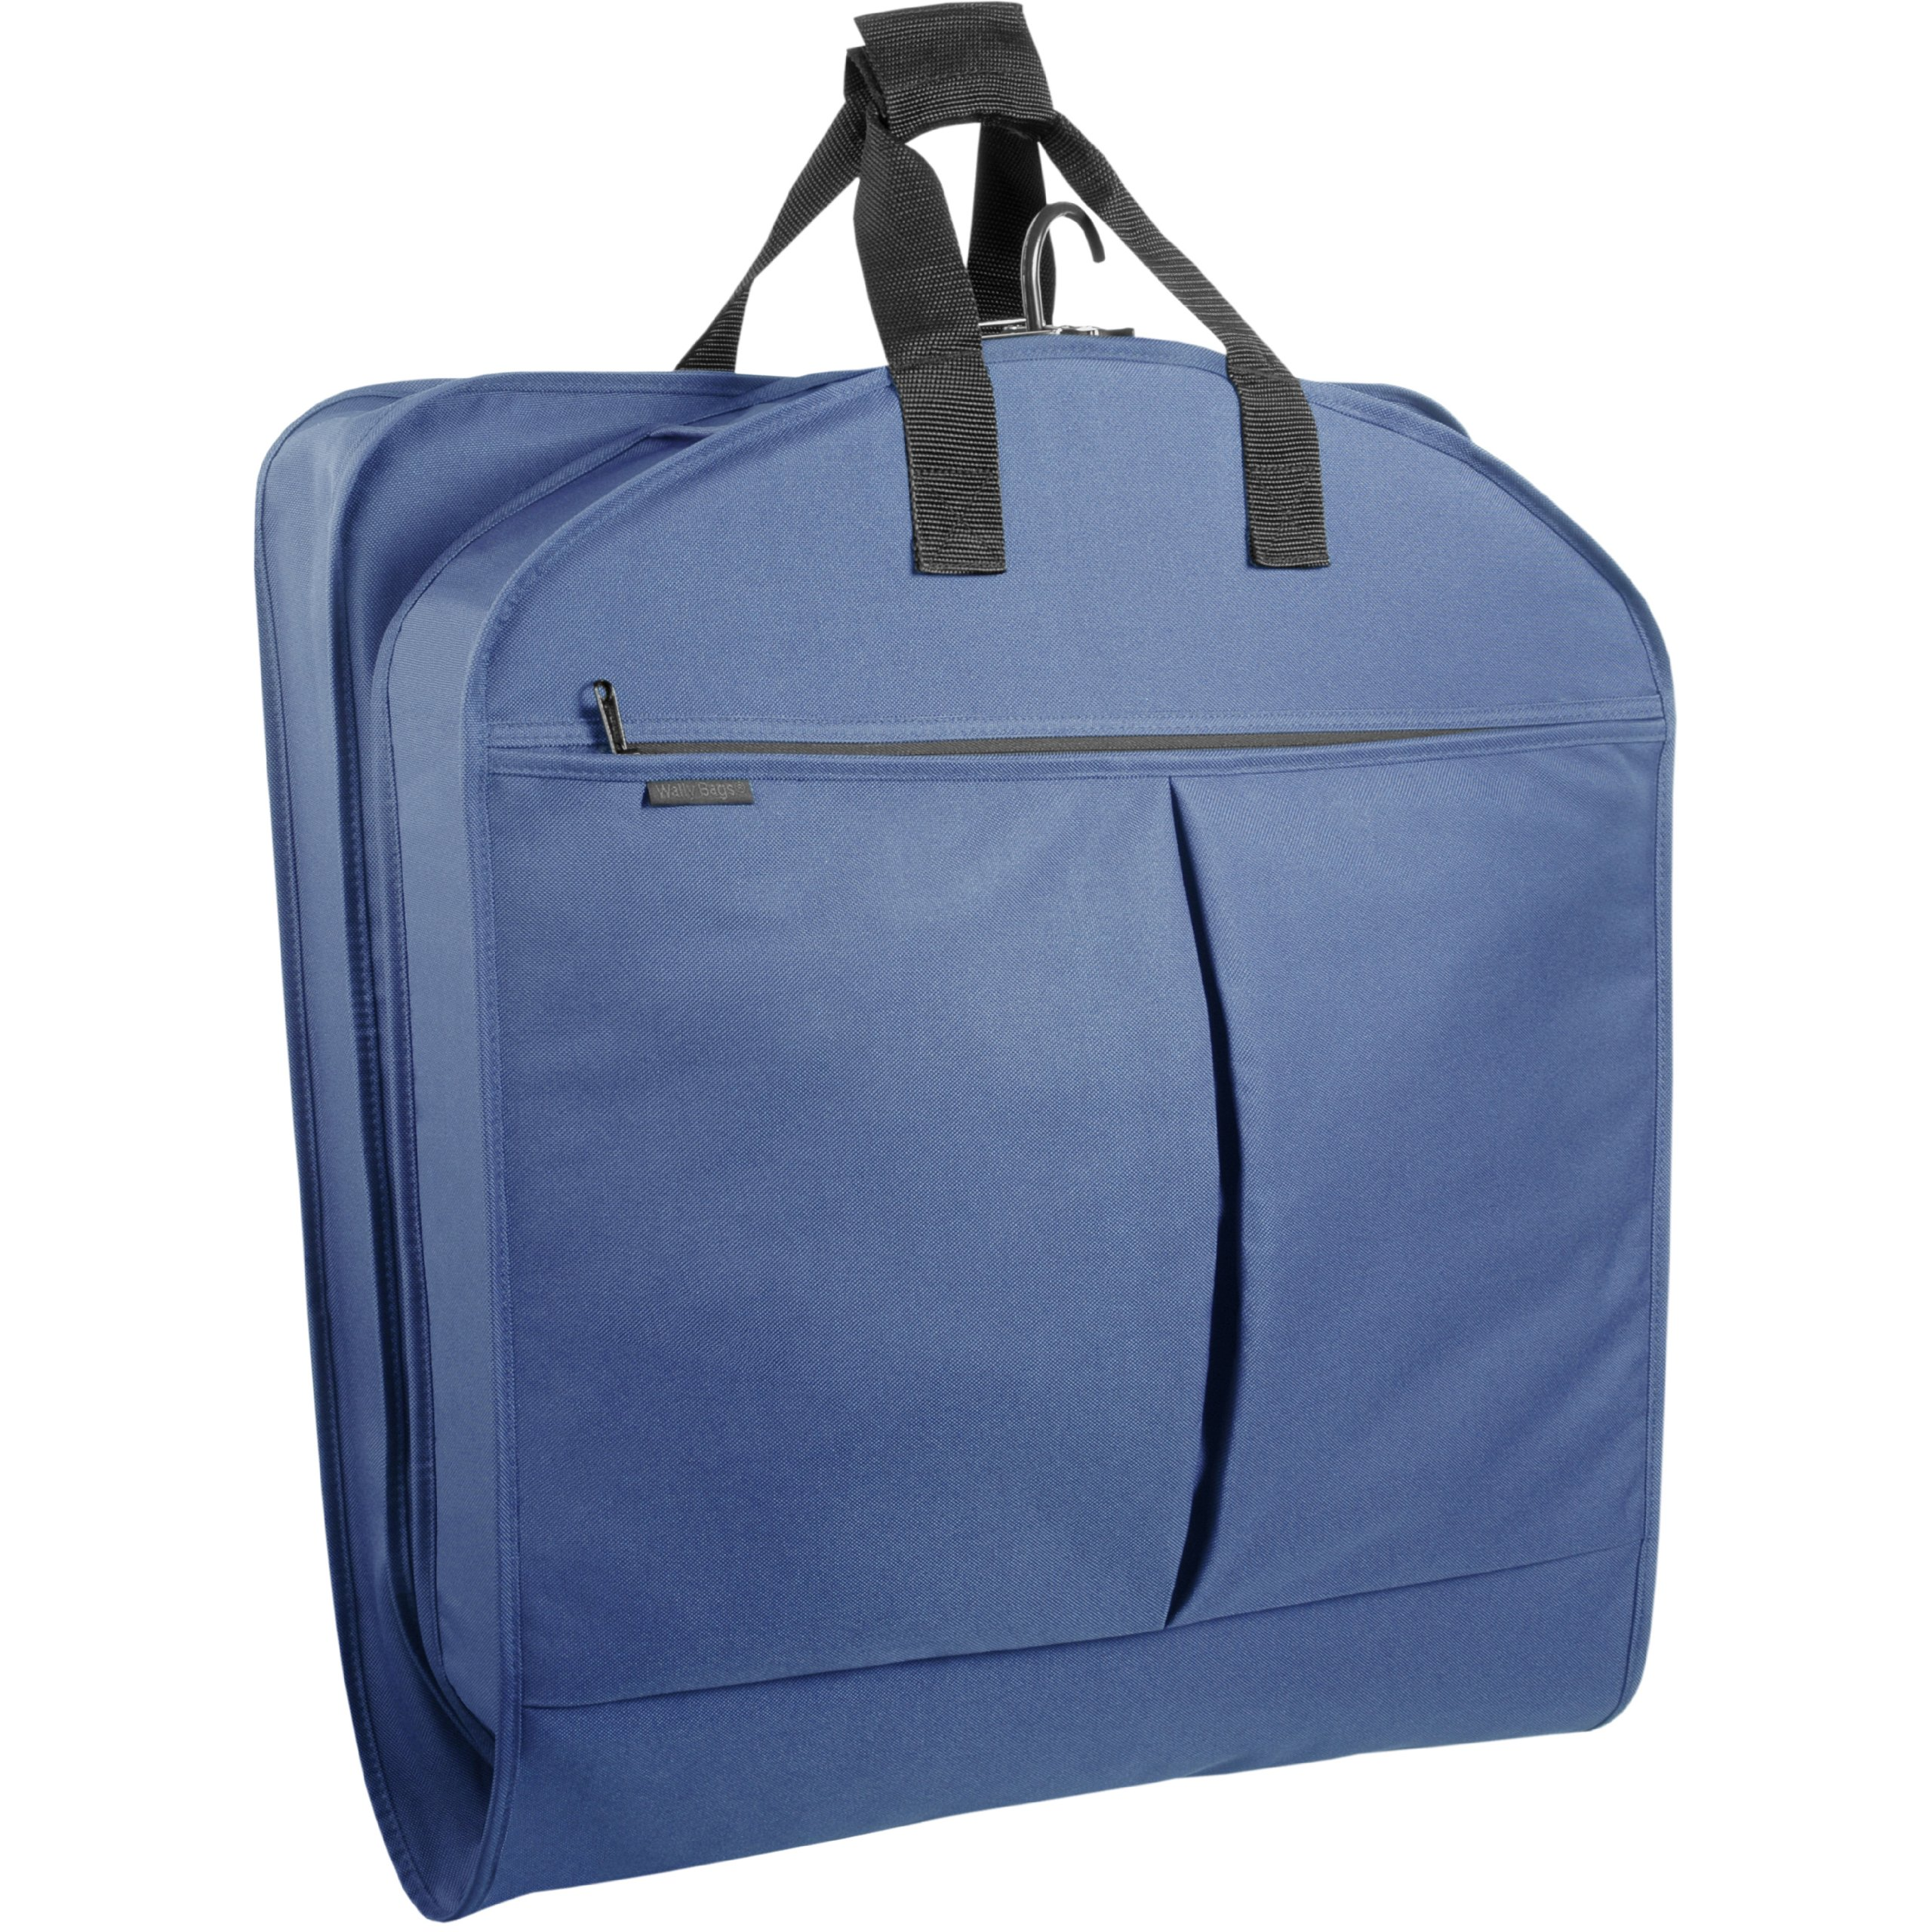 WallyBags 52-inch Dress Length, Carry-On, XL Garment Bag with Two Pockets and Extra Capacity by Wally Bags (Image #3)